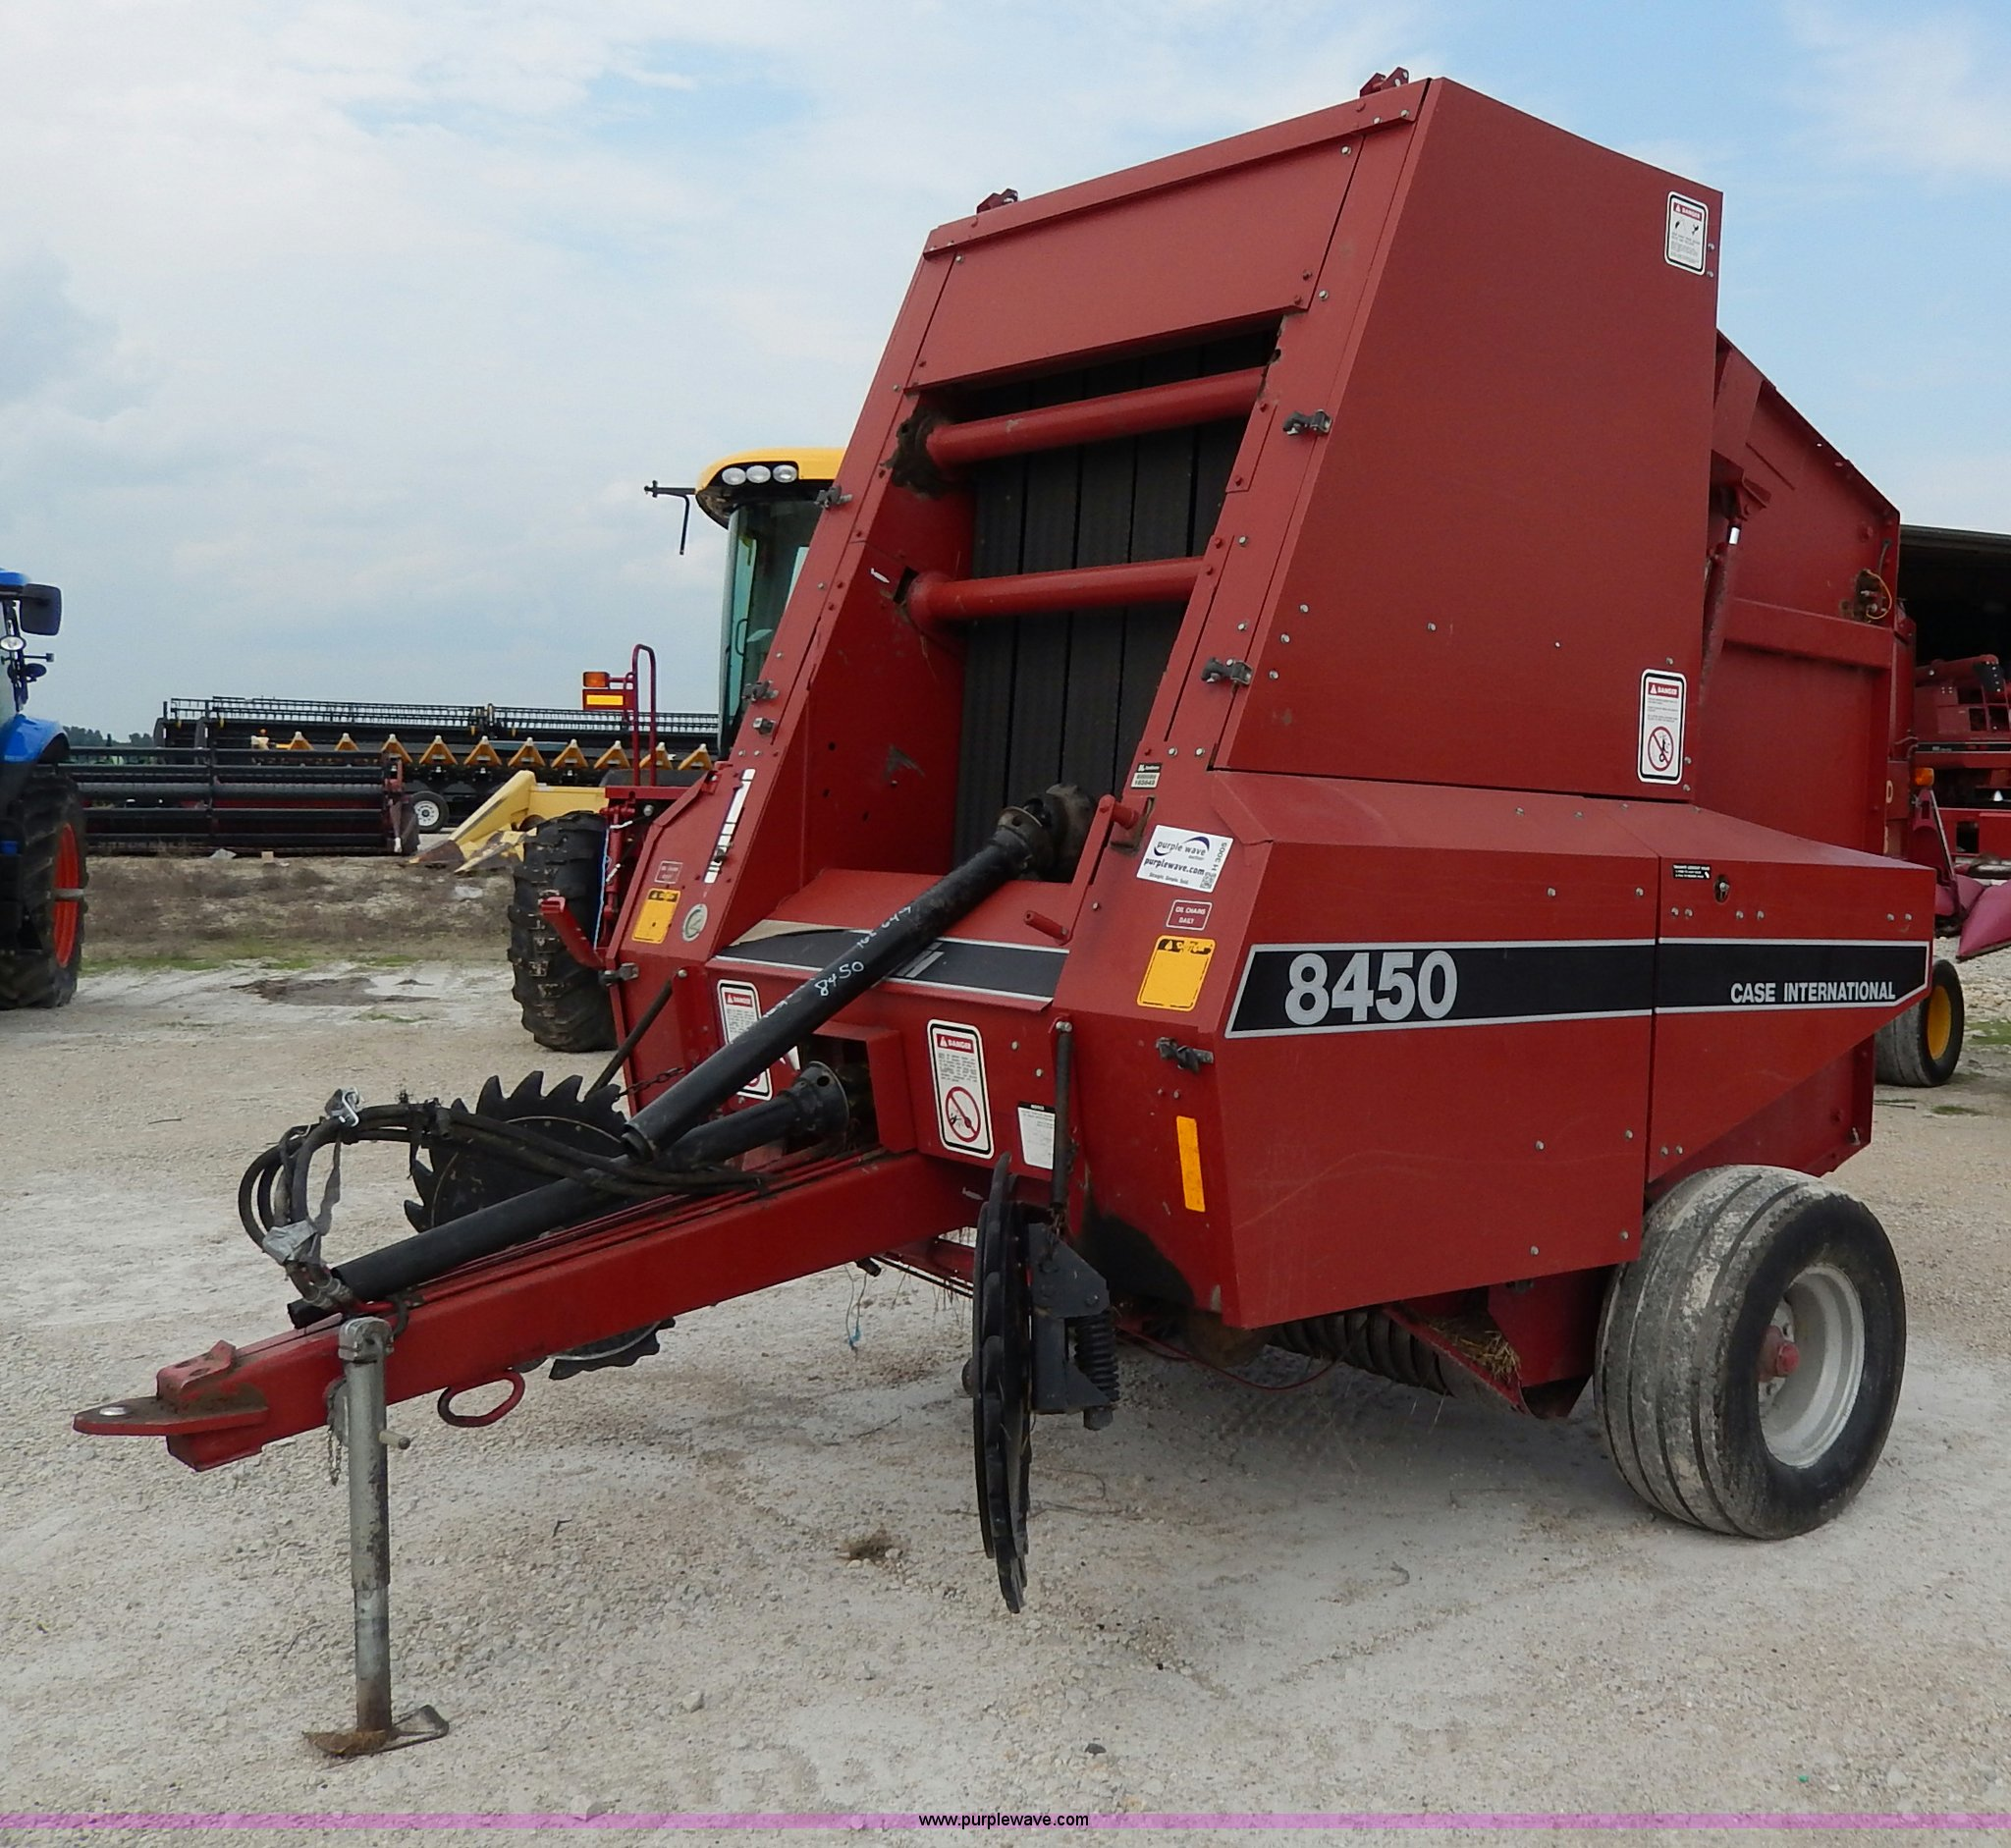 1988 Case IH 8450 round baler | Item H3005 | SOLD! August 28